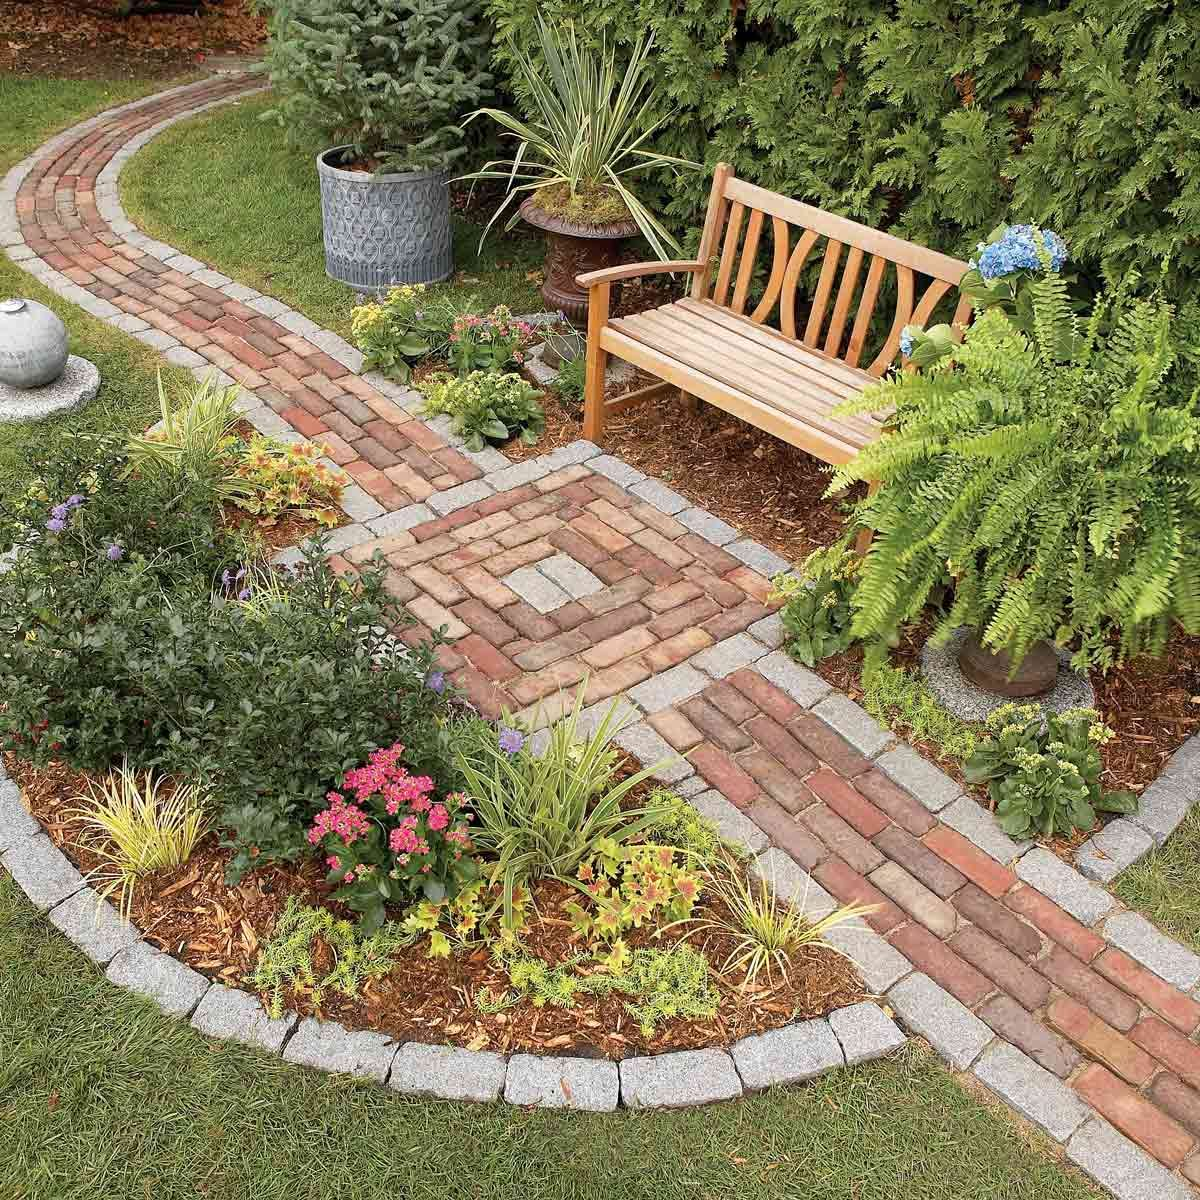 Brick Around Shed With Mulch And Flowers: Build A Brick Pathway In The Garden